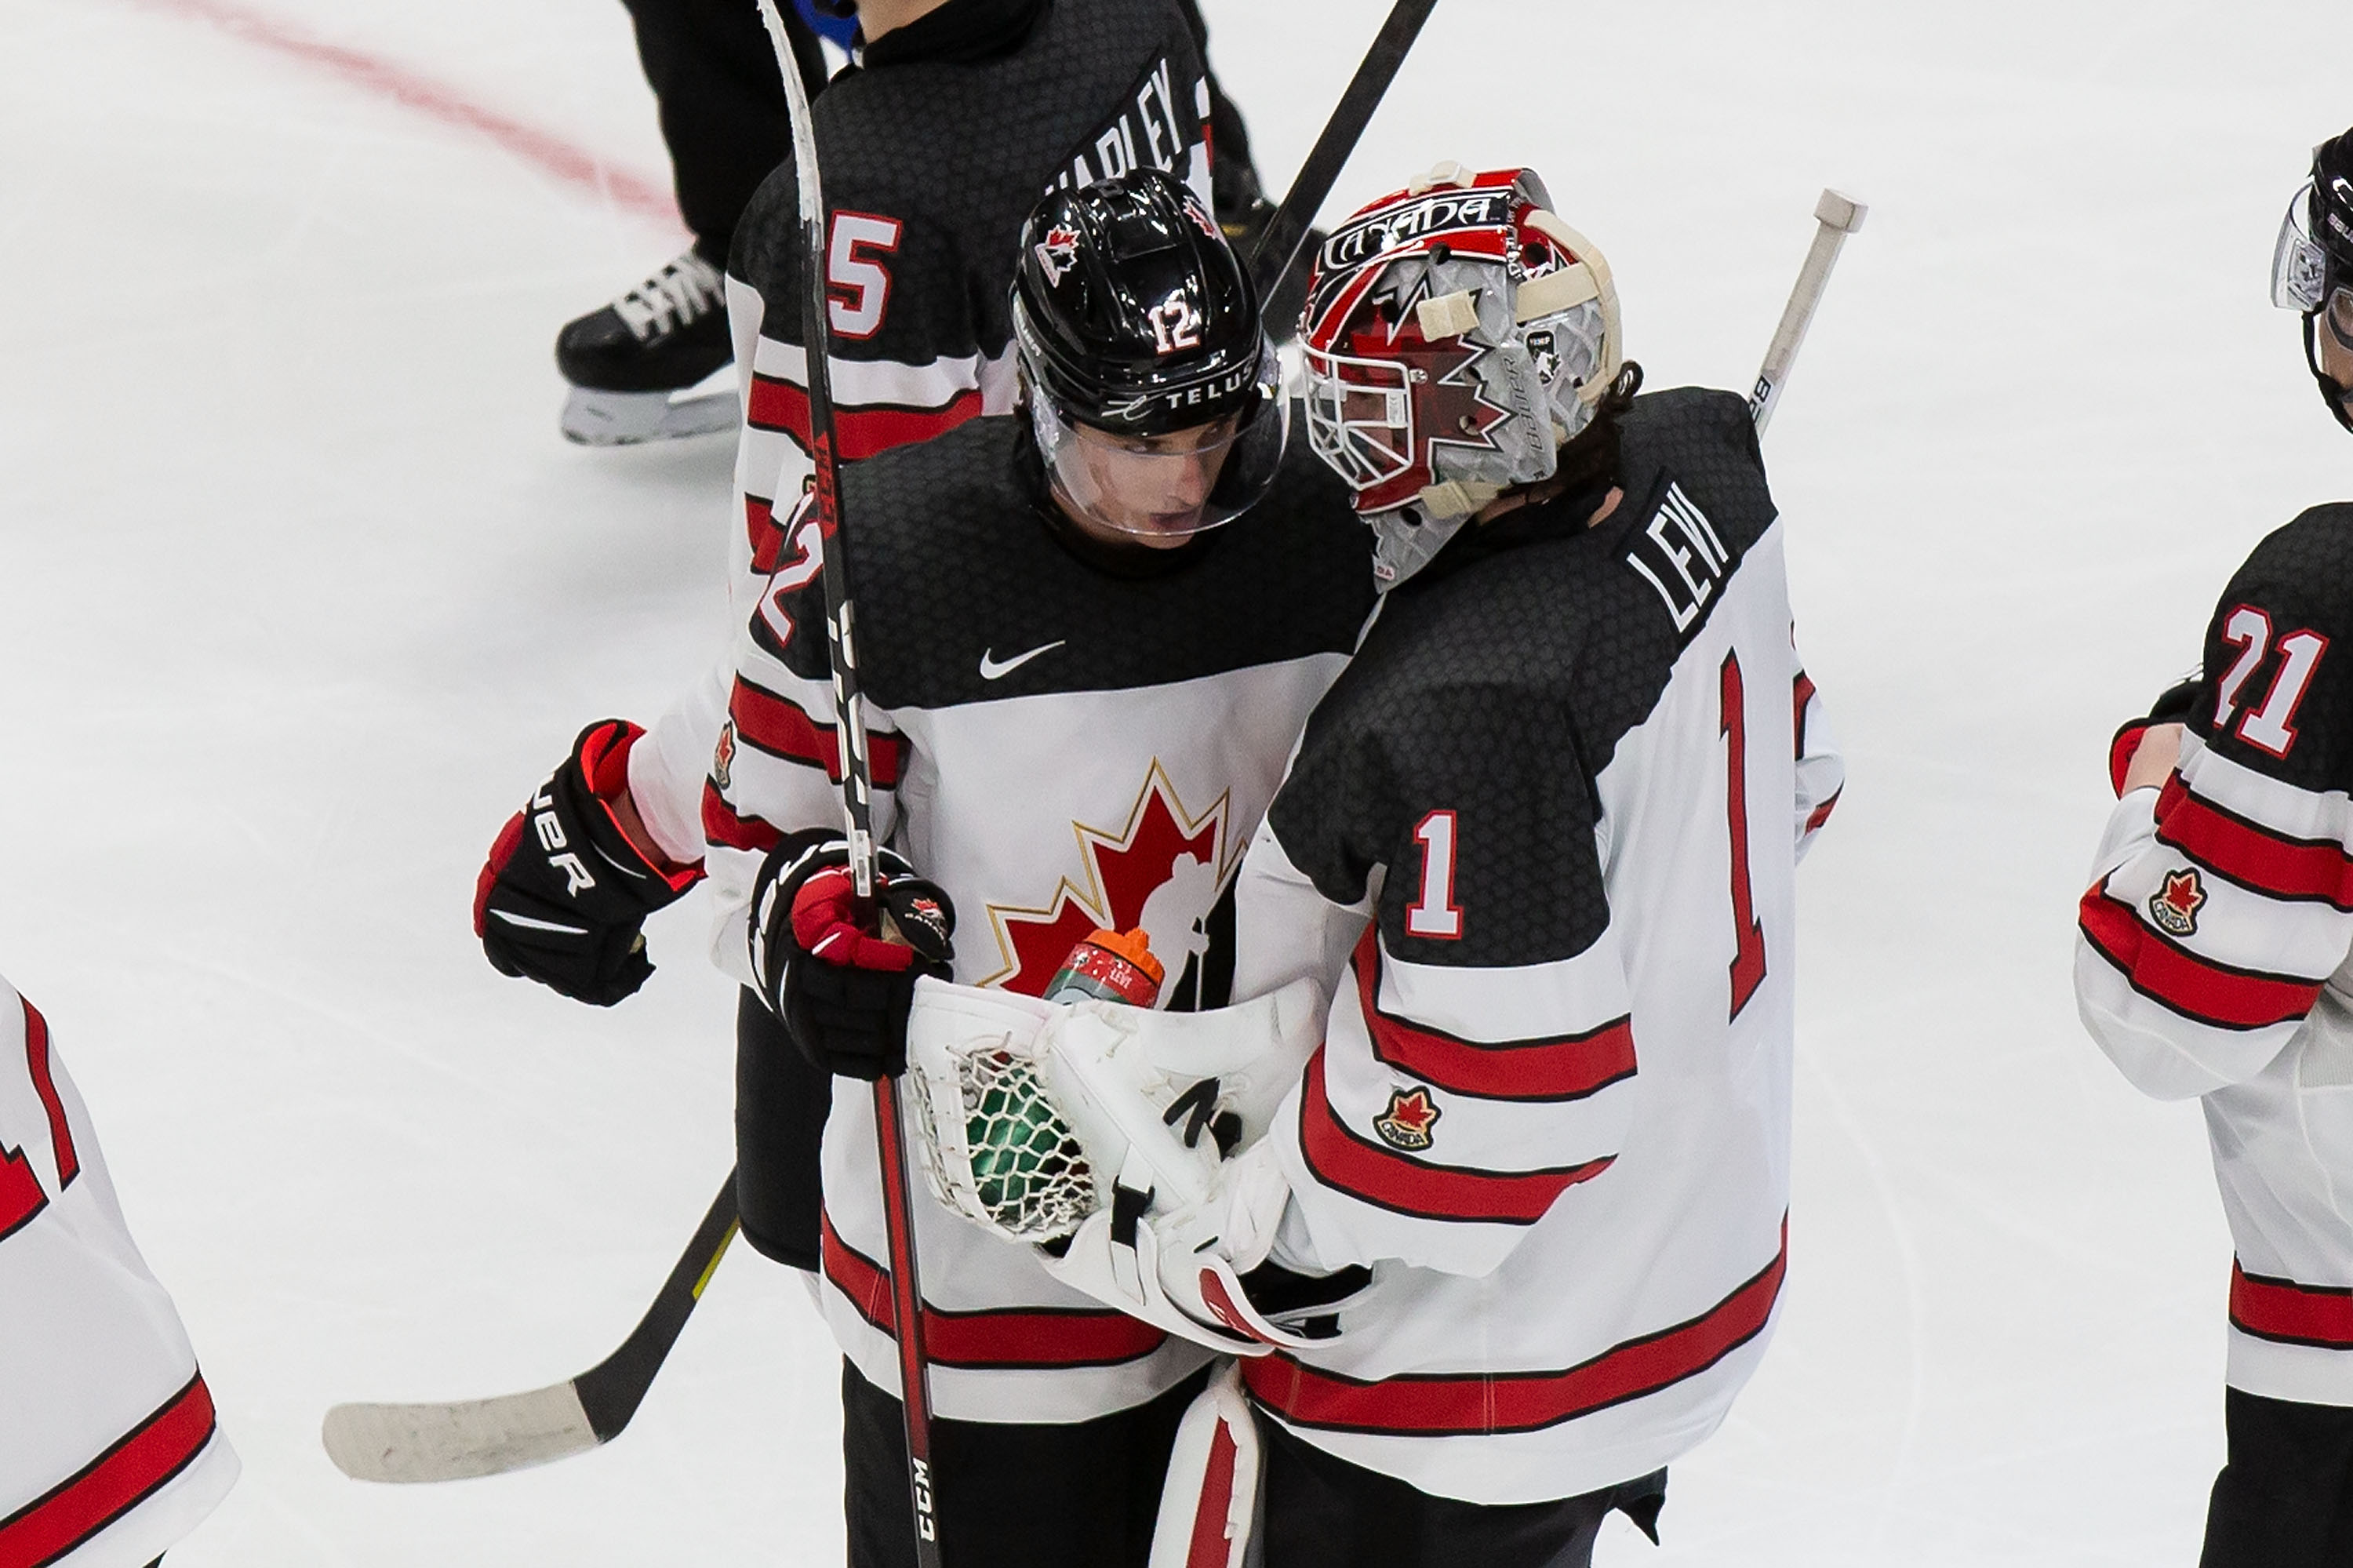 Jakob Pelletier #12 and goaltender Devon Levi #1 of Canada celebrate their victory over Slovakia during the 2021 IIHF World Junior Championship at Rogers Place on December 27, 2020 in Edmonton, Canada.